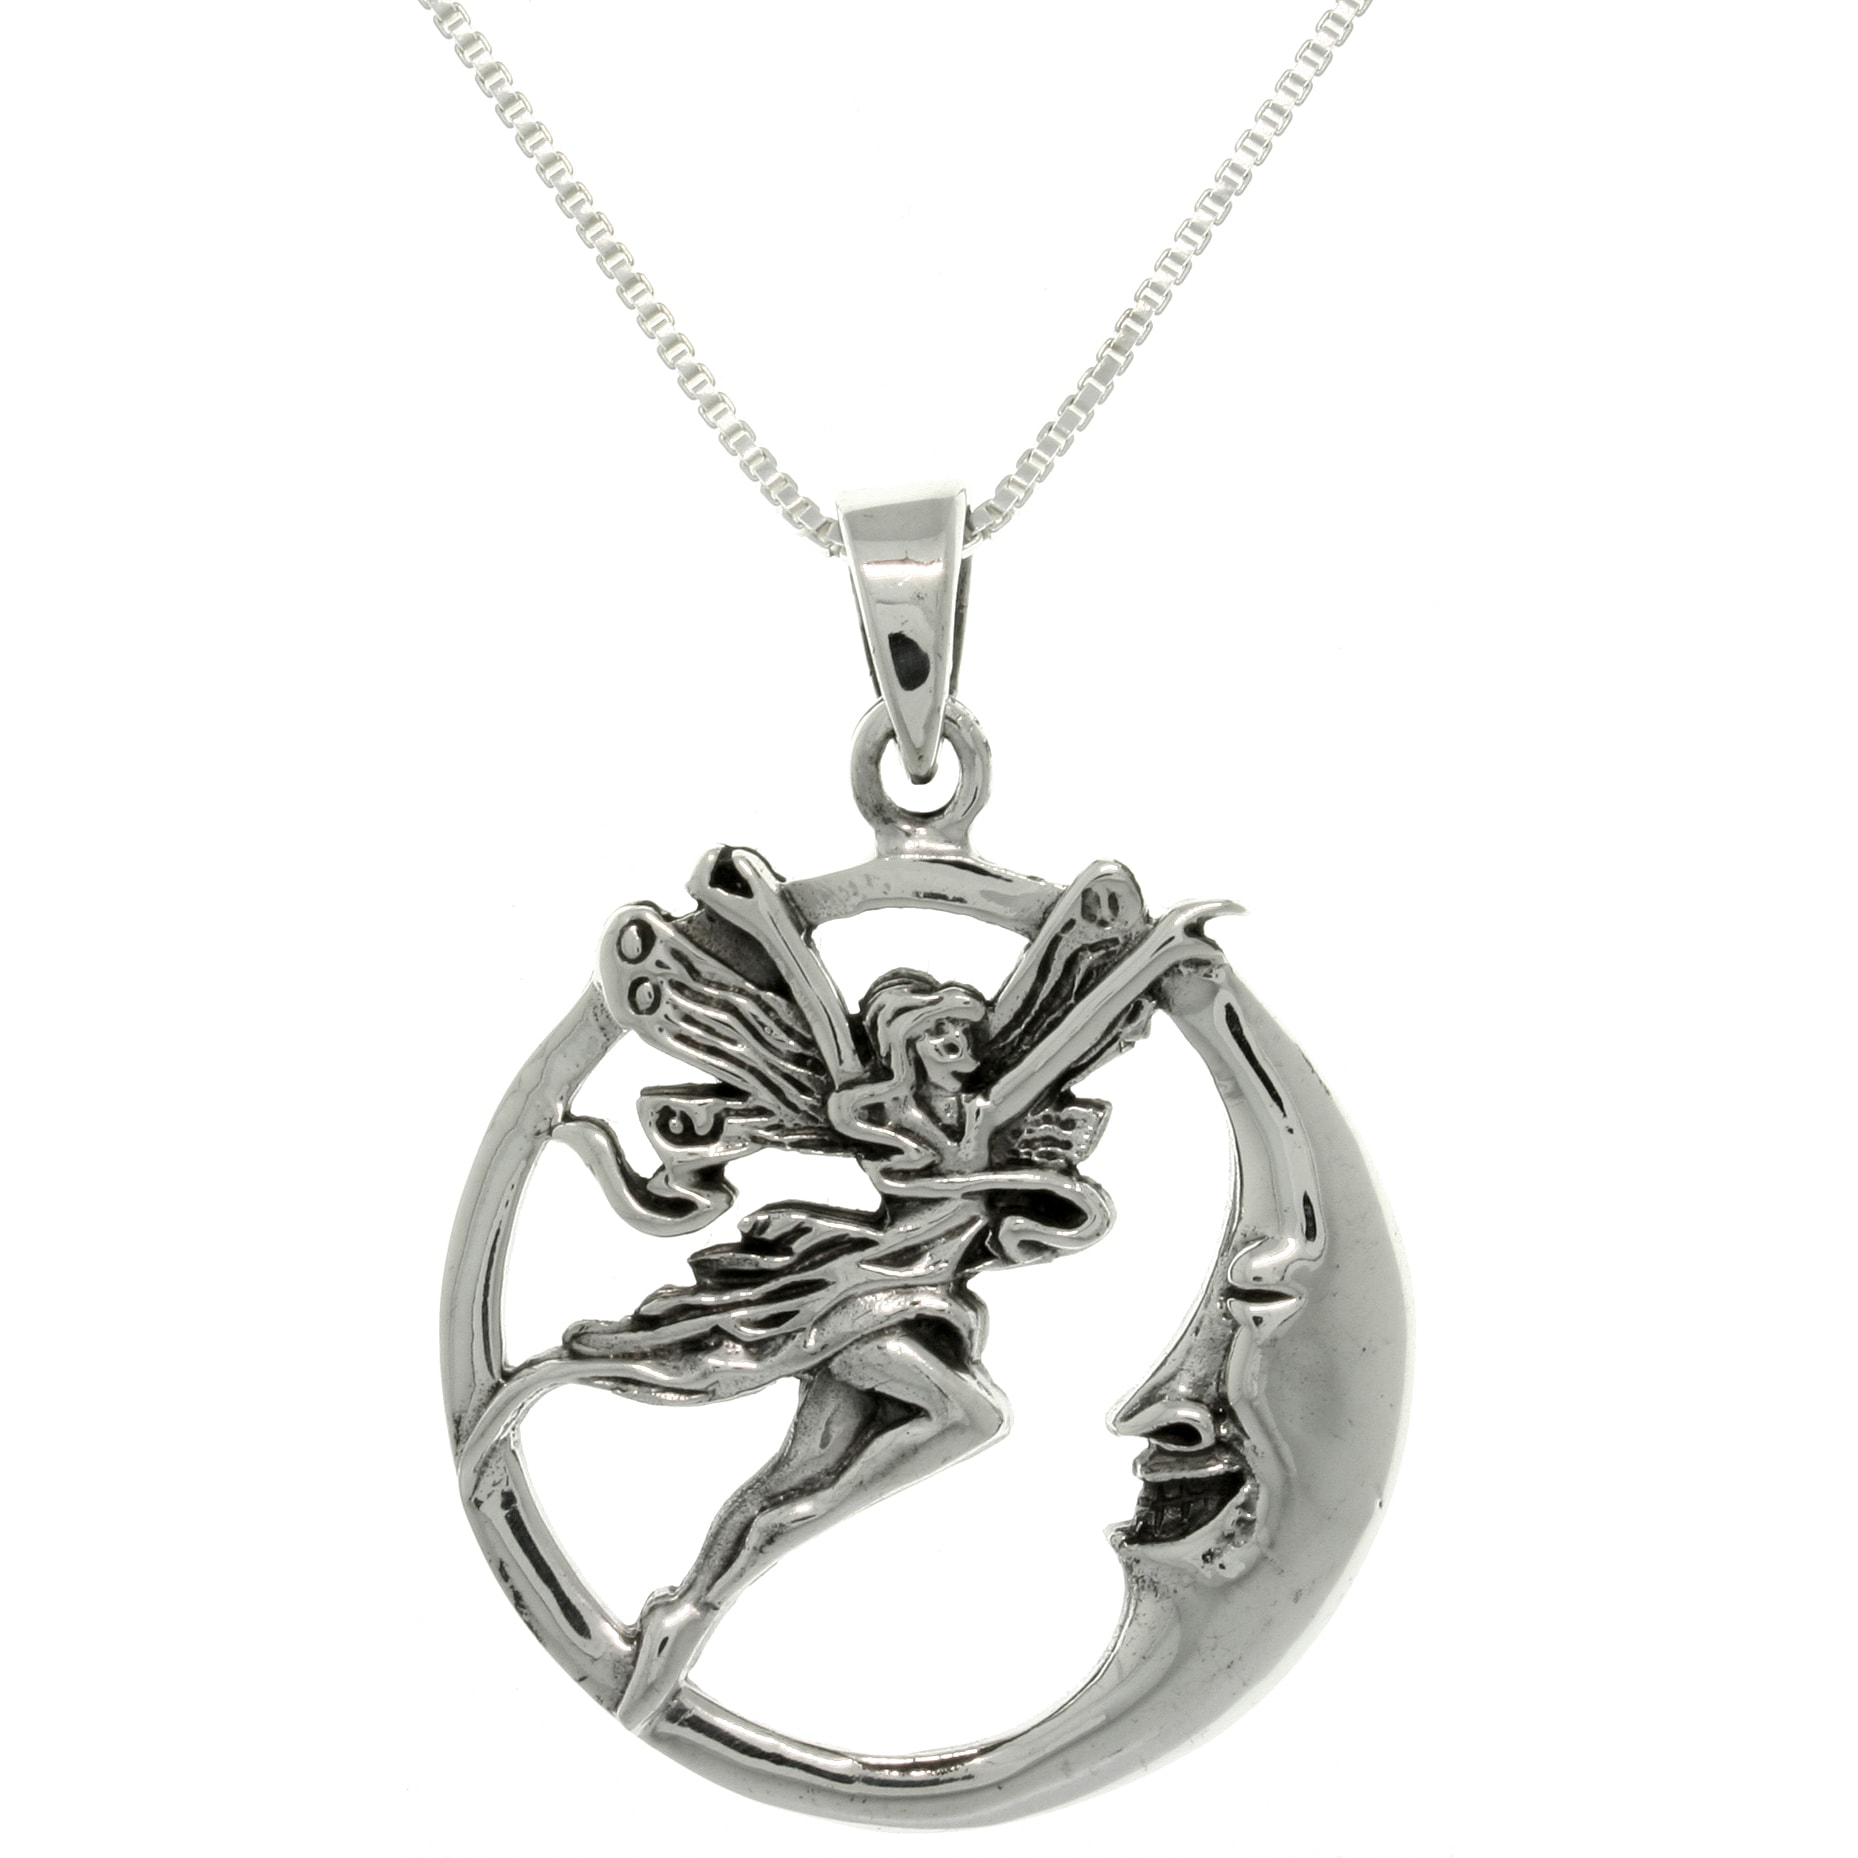 cgc silver necklace chain wing inch products butterfly sterling trends on fairy pendant rain enameled box jewelry